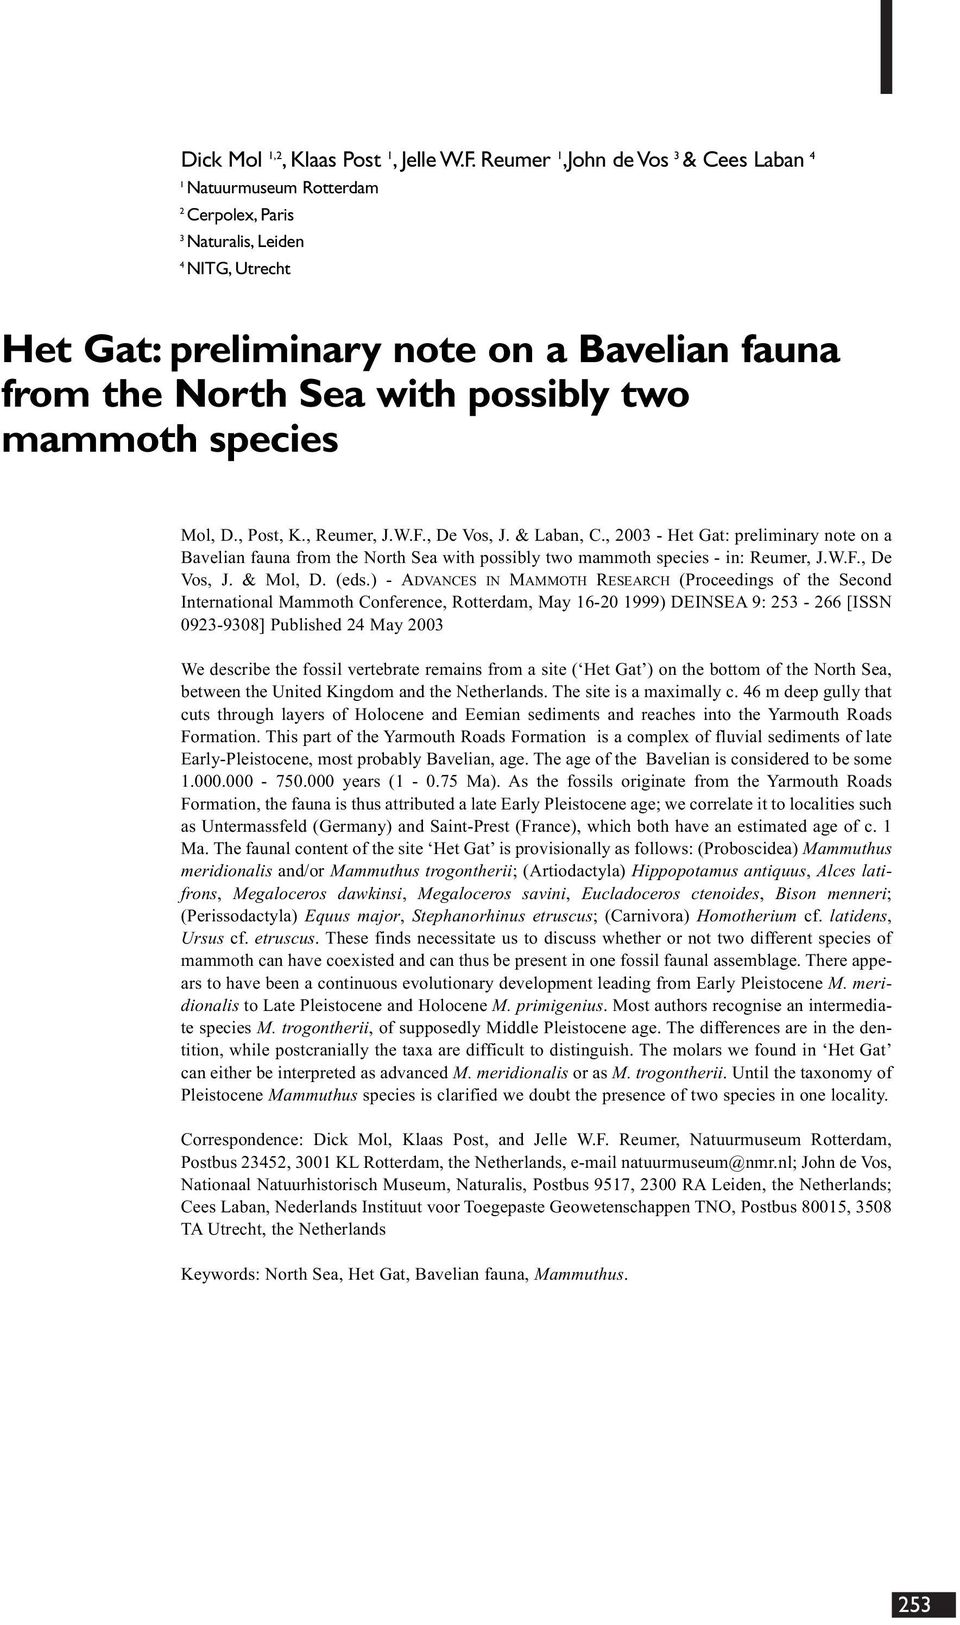 mammoth species Mol, D., Post, K., Reumer, J.W.F., De Vos, J. & Laban, C., 2003 - Het Gat: preliminary note on a Bavelian fauna from the North Sea with possibly two mammoth species - in: Reumer, J.W.F., De Vos, J. & Mol, D.